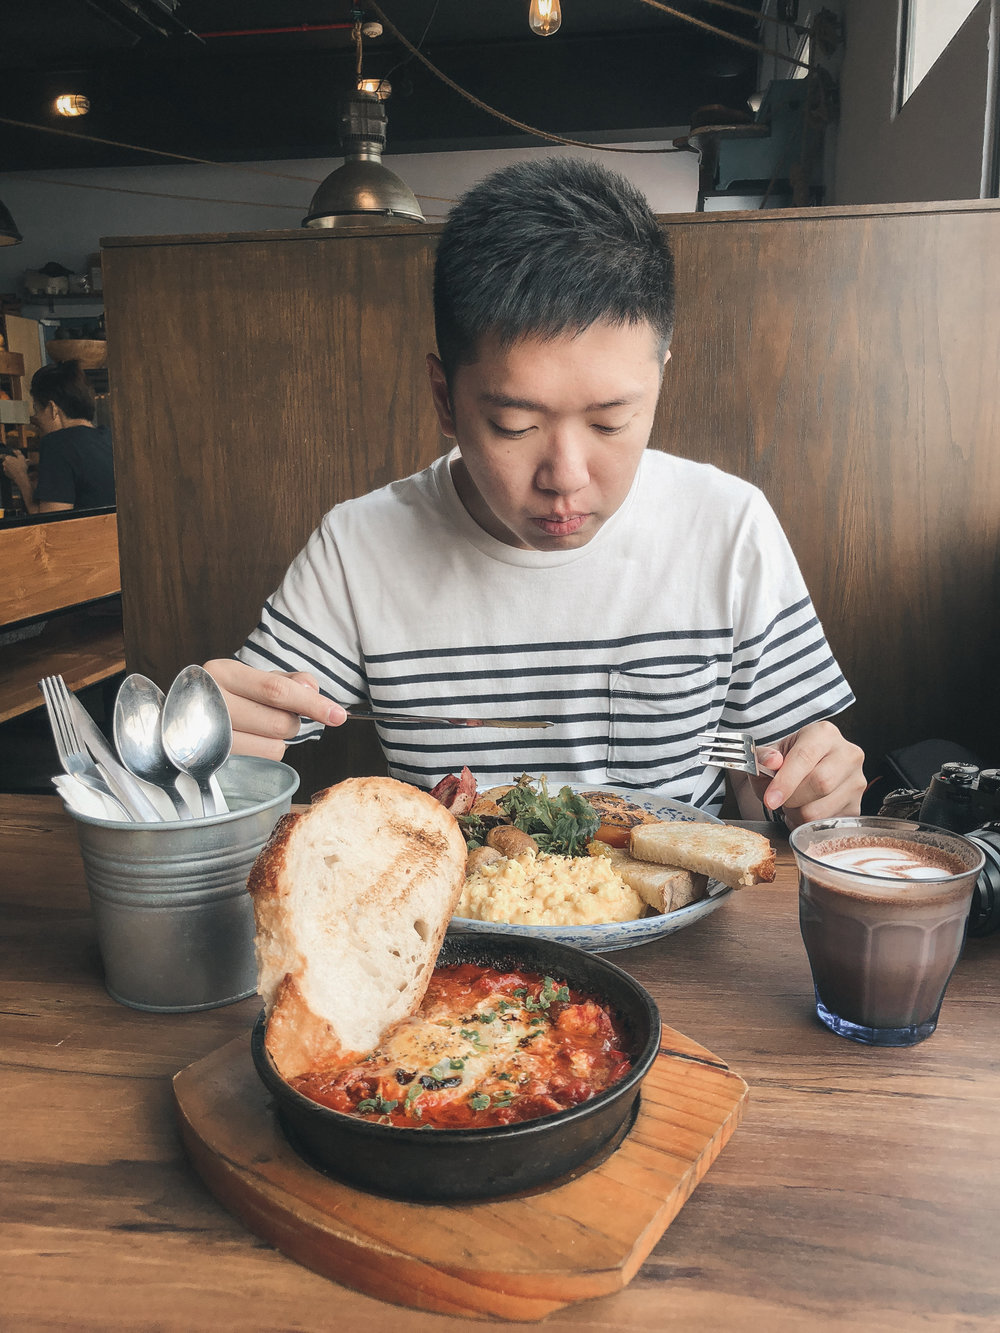 环境舒服,食物好吃,价格合理。将来应该会常来吧! The combination of a comfortable ambience, delicious food and most importantly, reasonable price makes this cafe a must-visit in our opinions. We'll definitely be back.